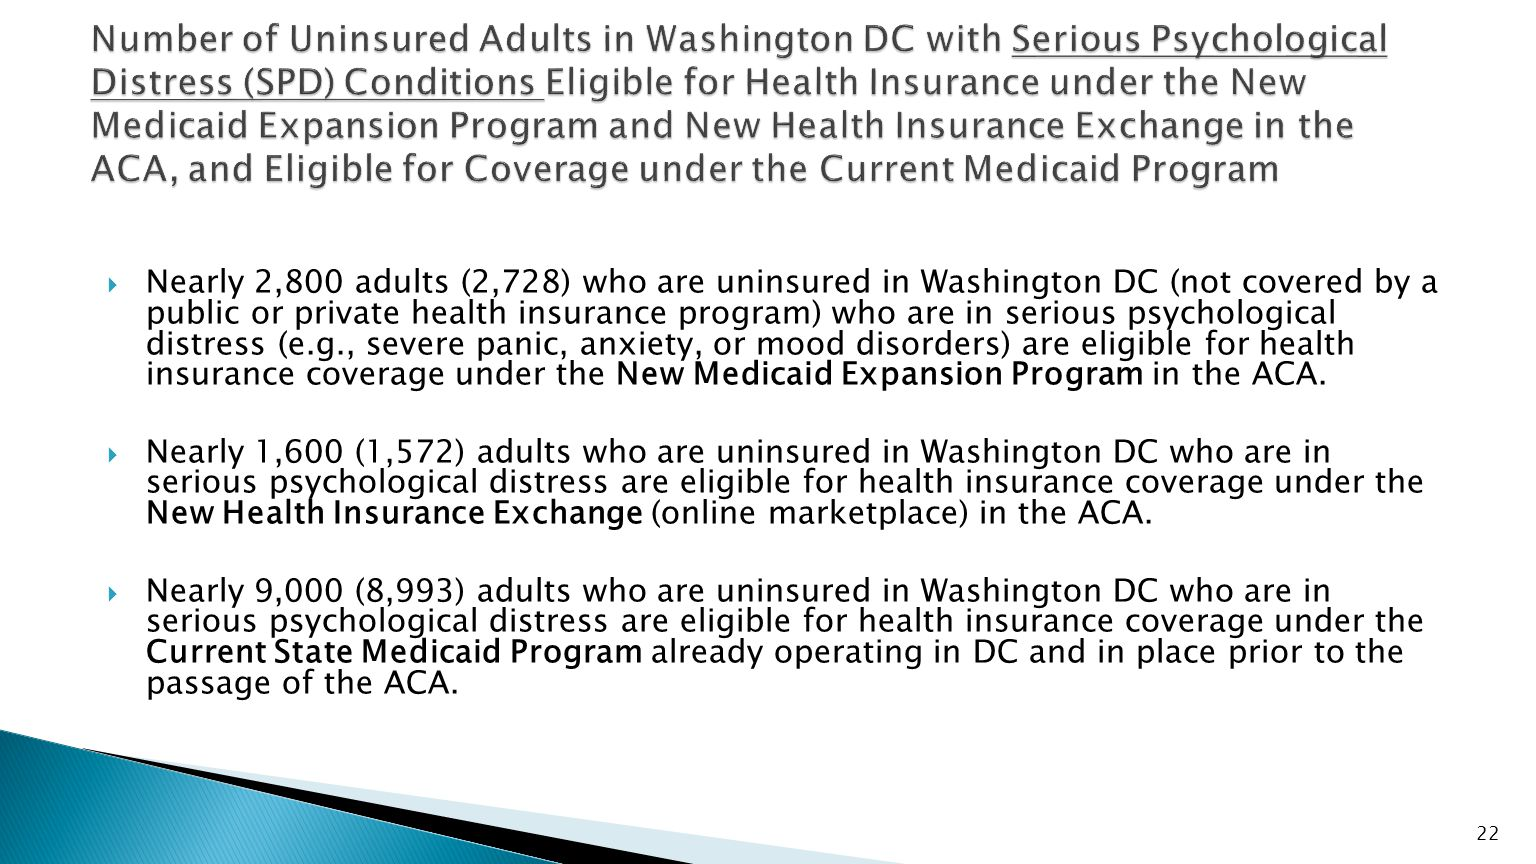  Nearly 2,800 adults (2,728) who are uninsured in Washington DC (not covered by a public or private health insurance program) who are in serious psychological distress (e.g., severe panic, anxiety, or mood disorders) are eligible for health insurance coverage under the New Medicaid Expansion Program in the ACA.